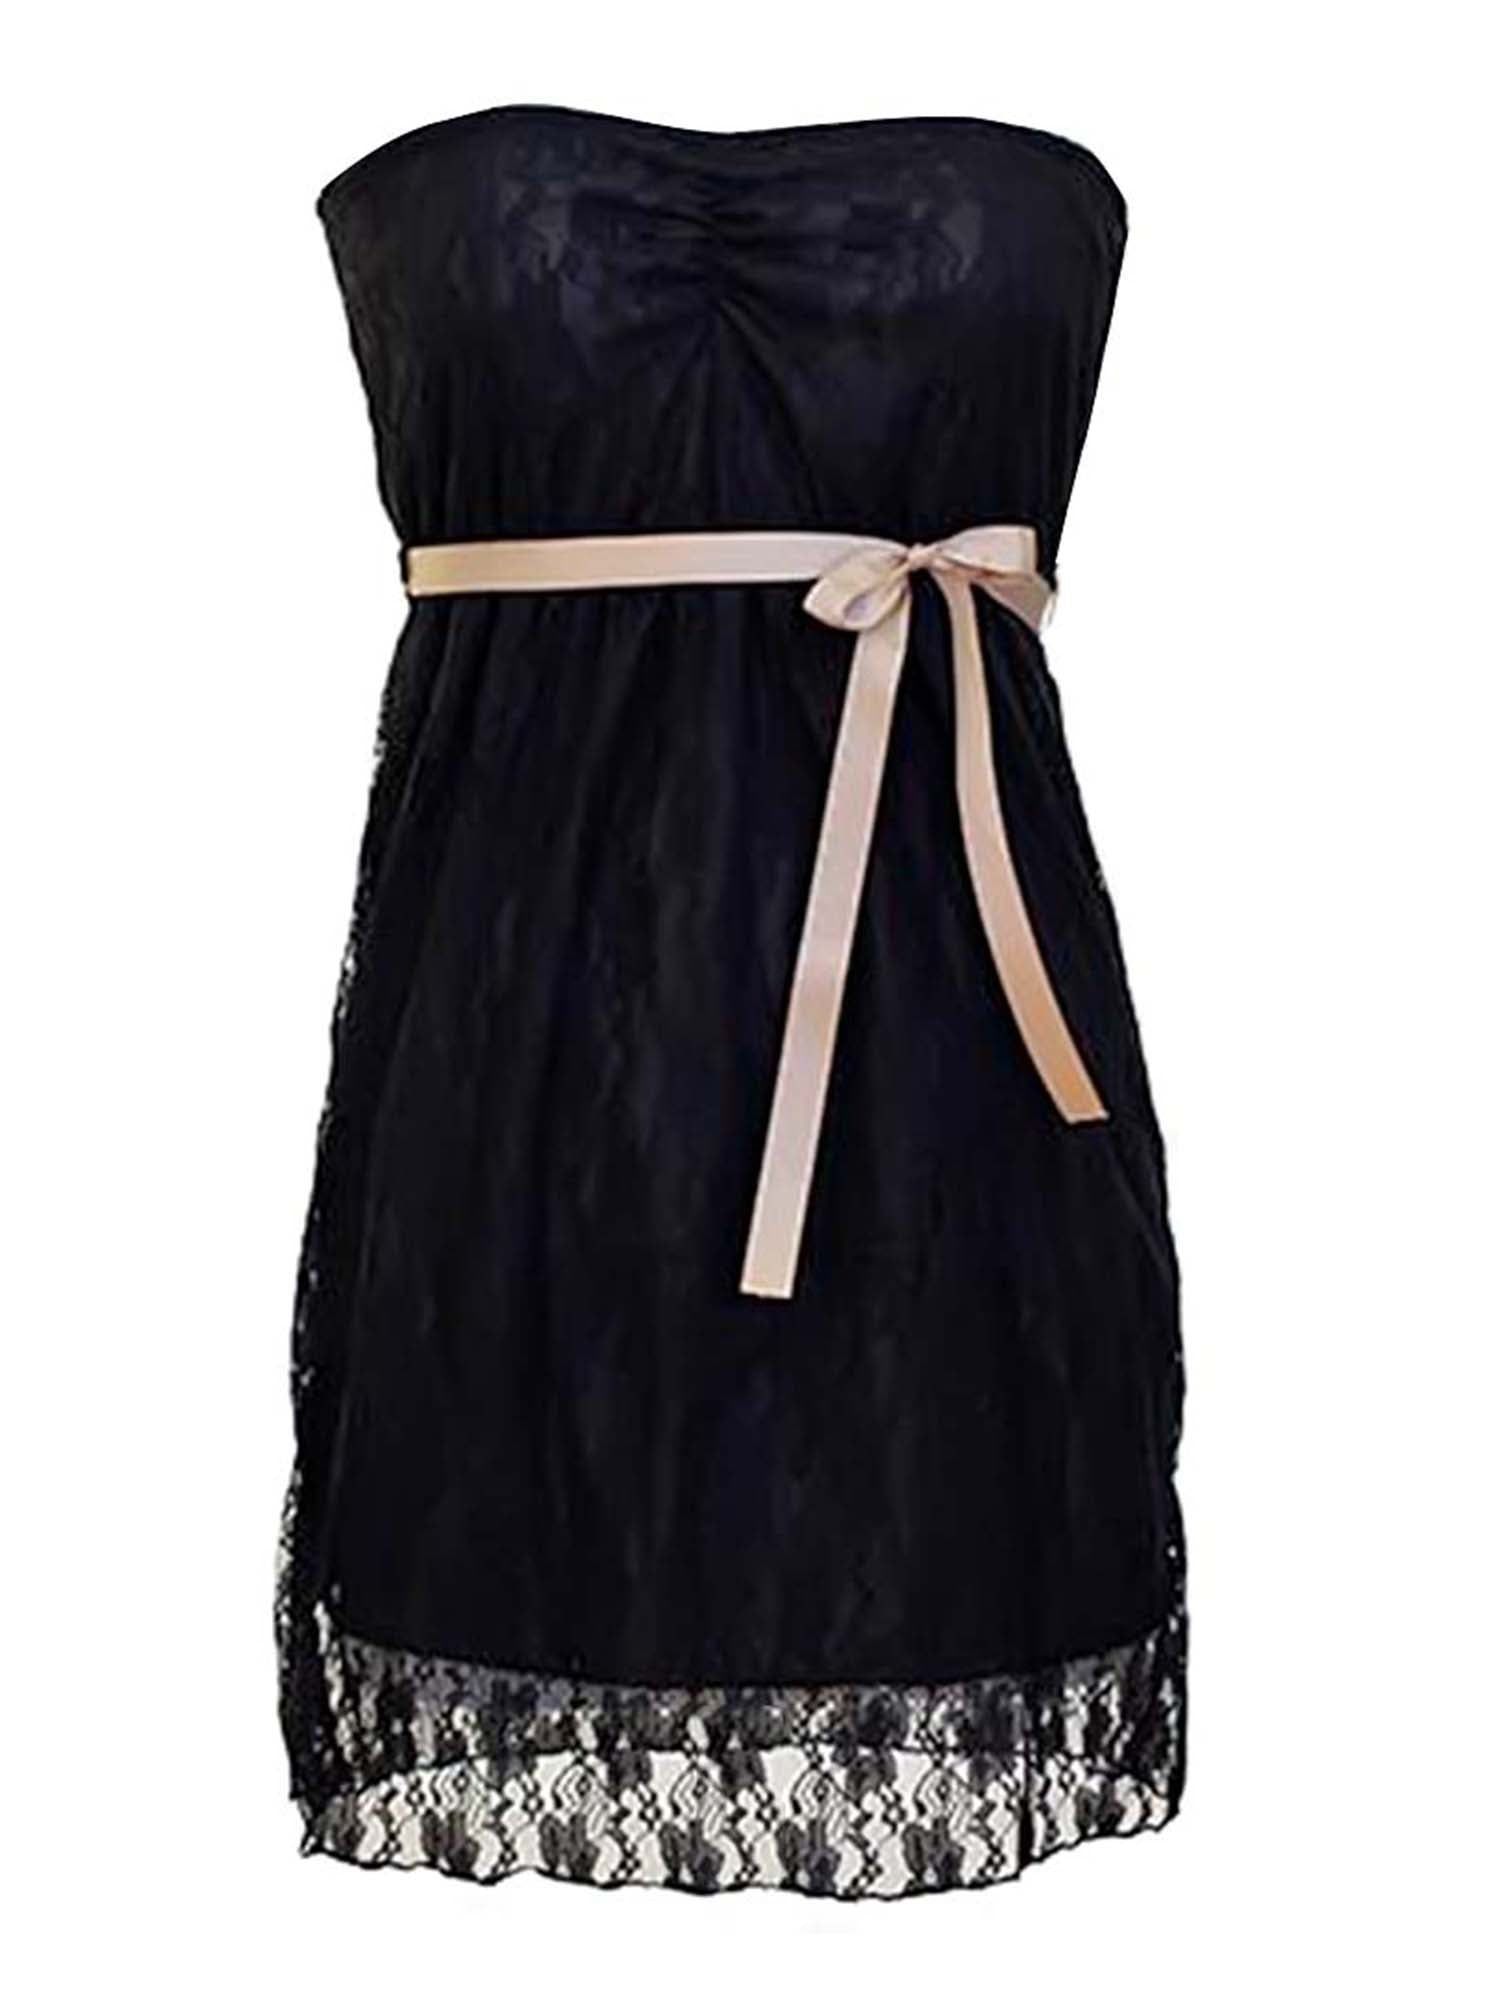 Lace Strapless Junior Size Dress With Bow